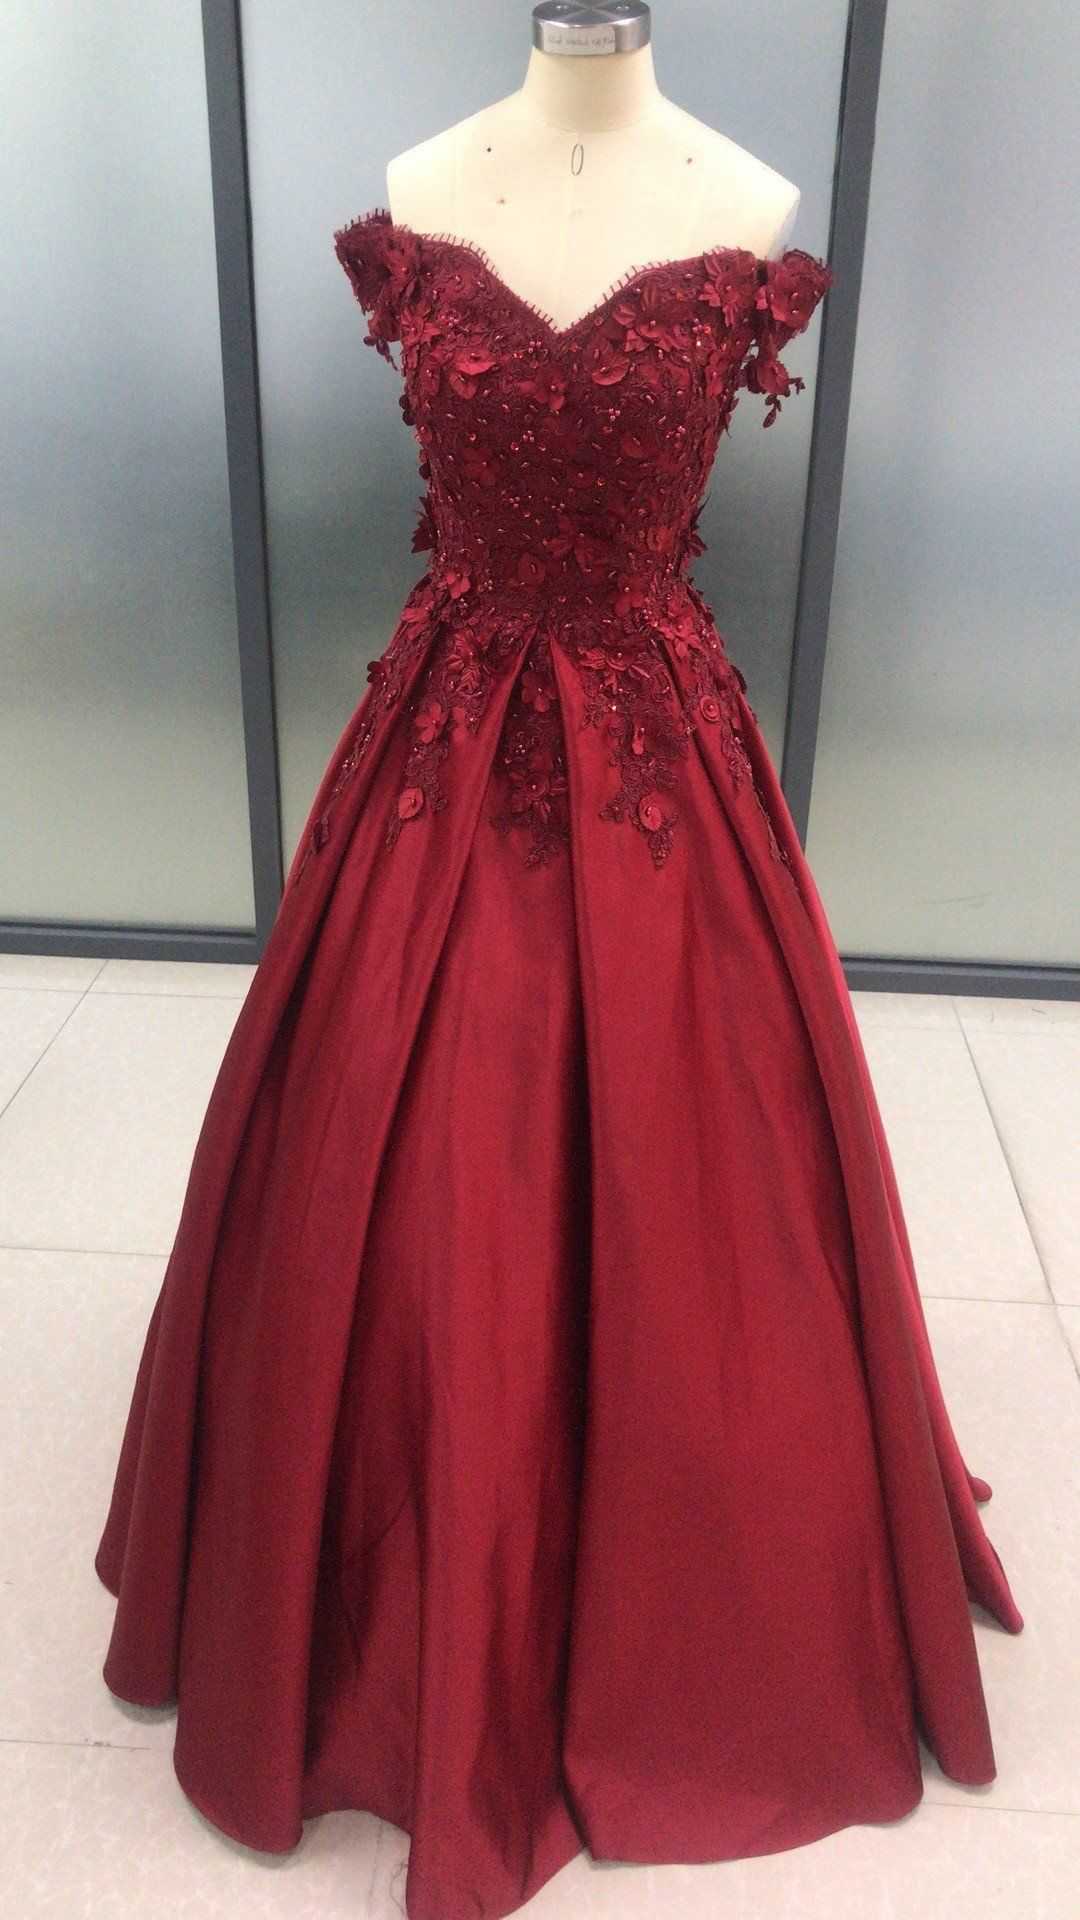 Dark Red Satin With Lace Applique Ball Gown Formal Dress Prom Dress 2020 Prom Dresses Ball Gown Ball Gowns Lace Evening Dresses [ 1920 x 1080 Pixel ]